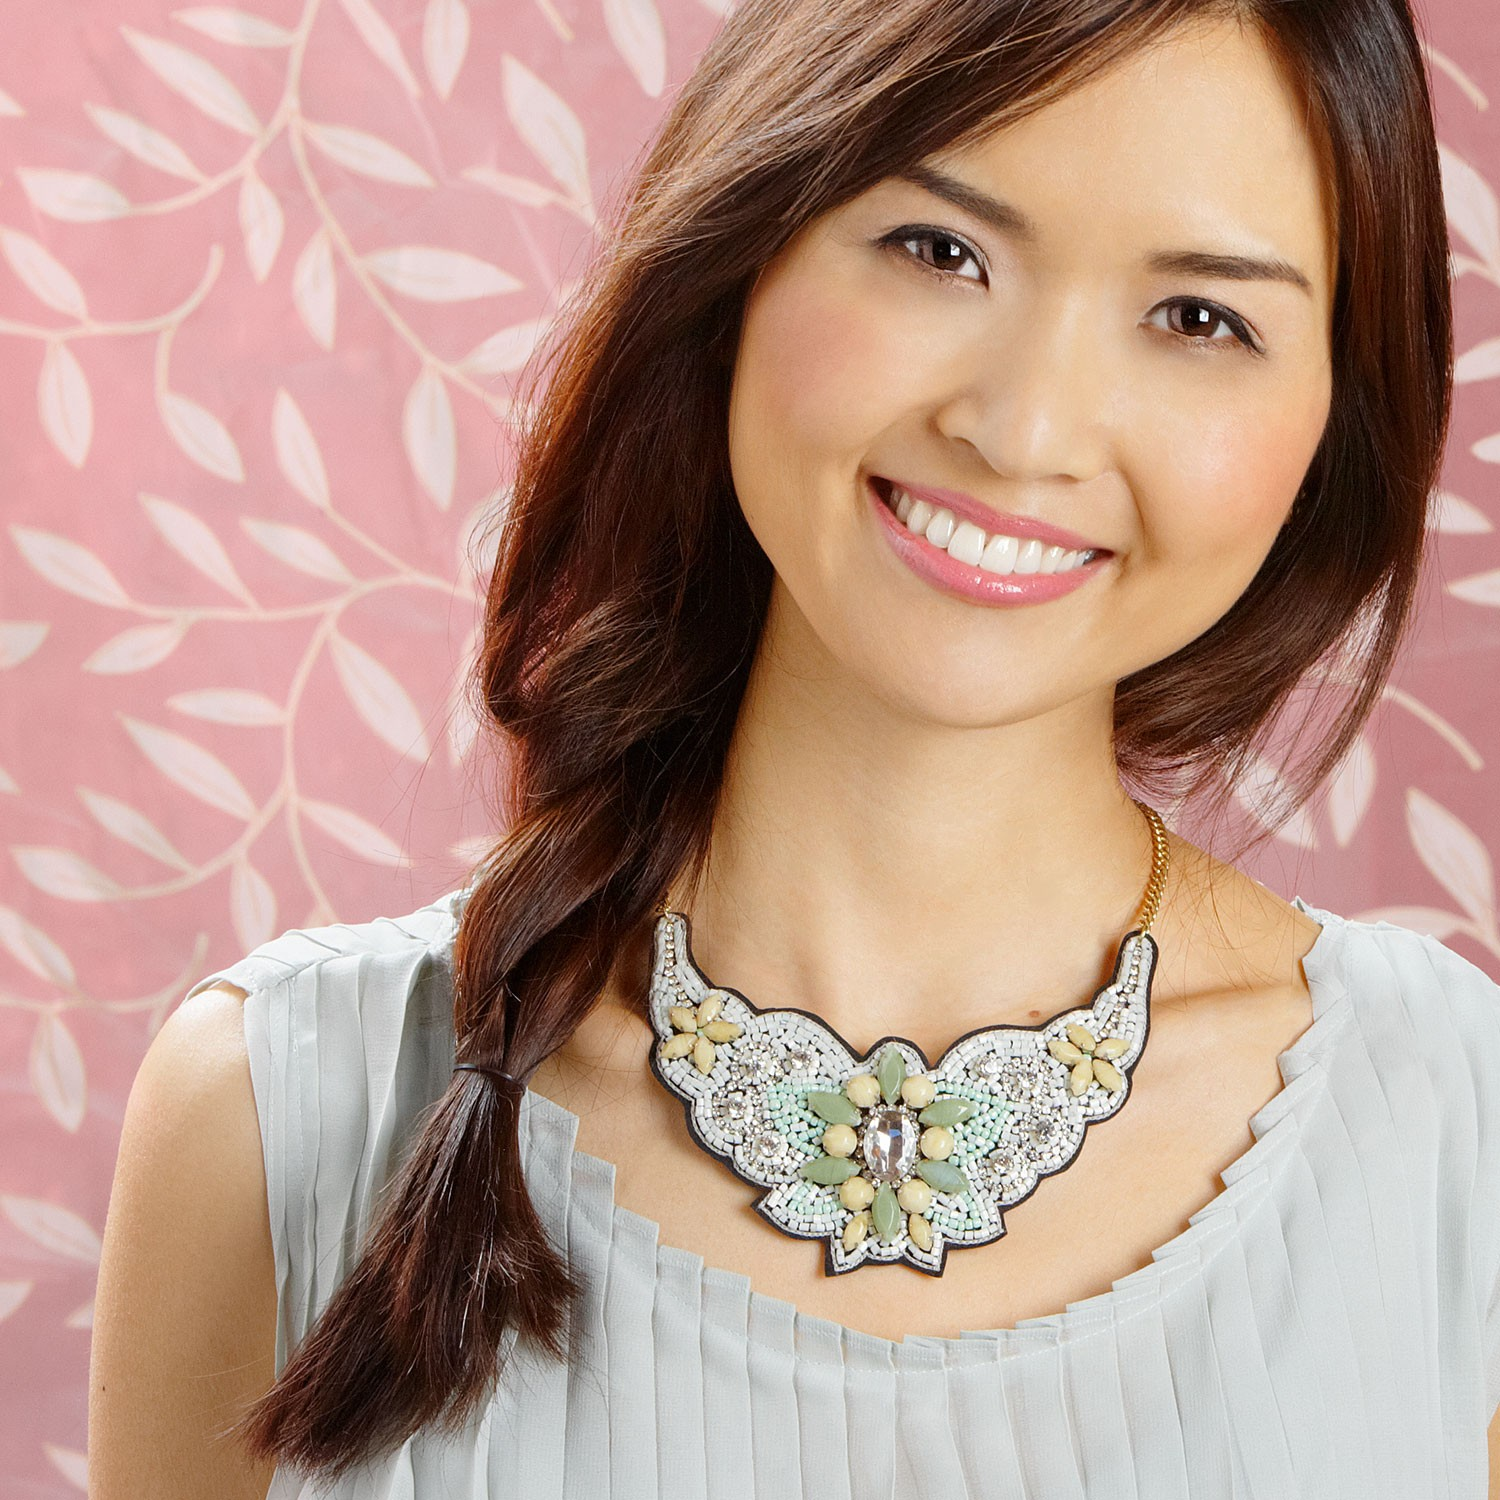 Sugar Crystal Necklace  - $39 - Made in India